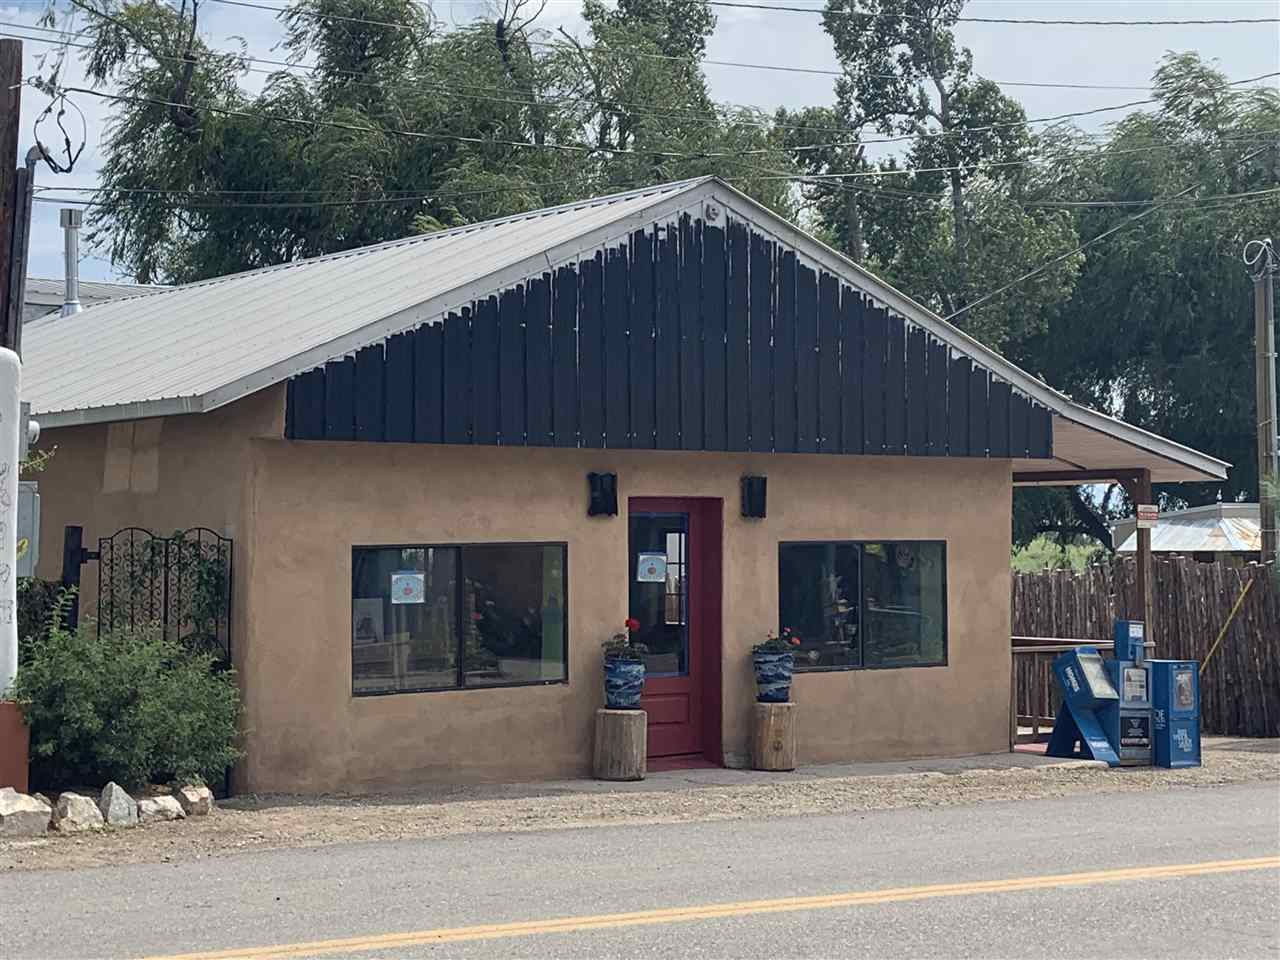 487 HWY 150, Arroyo Seco, NM 87514